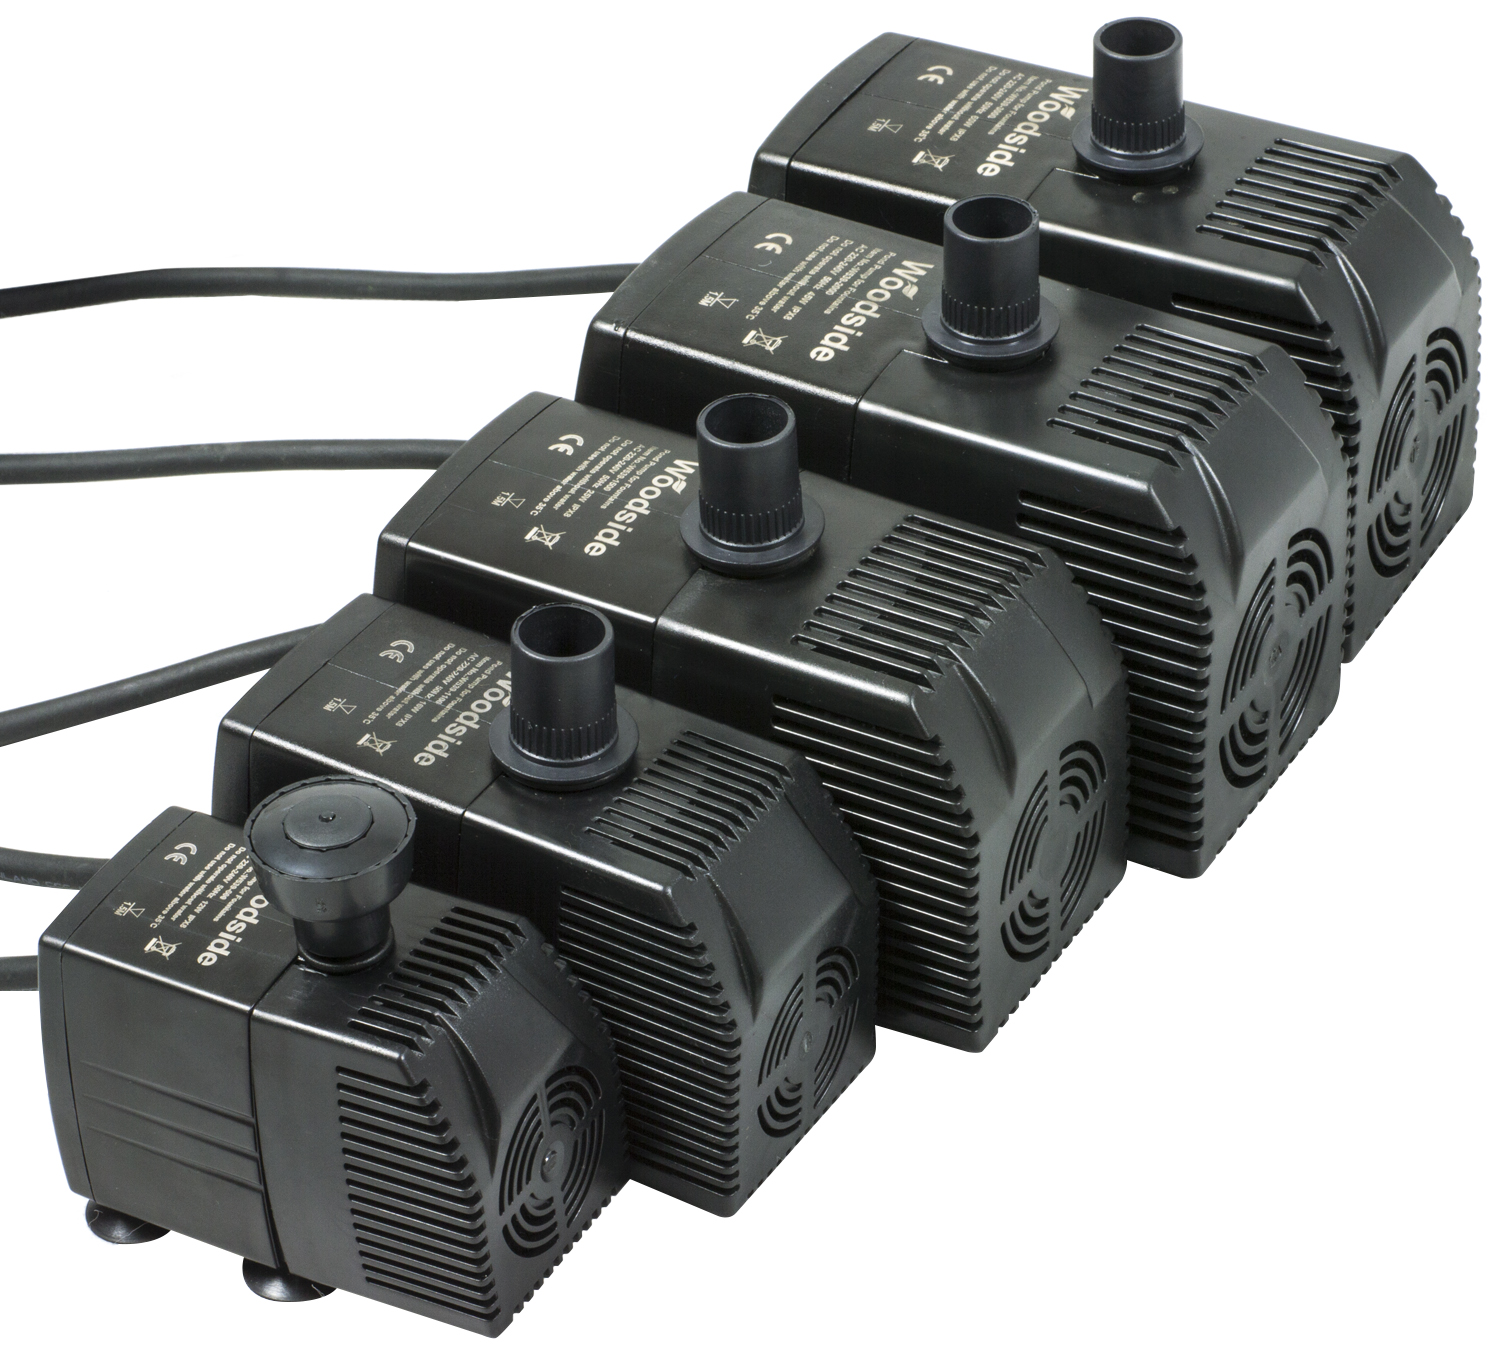 Woodside pond fountain pump pumps outdoor value for Pond fountain pump